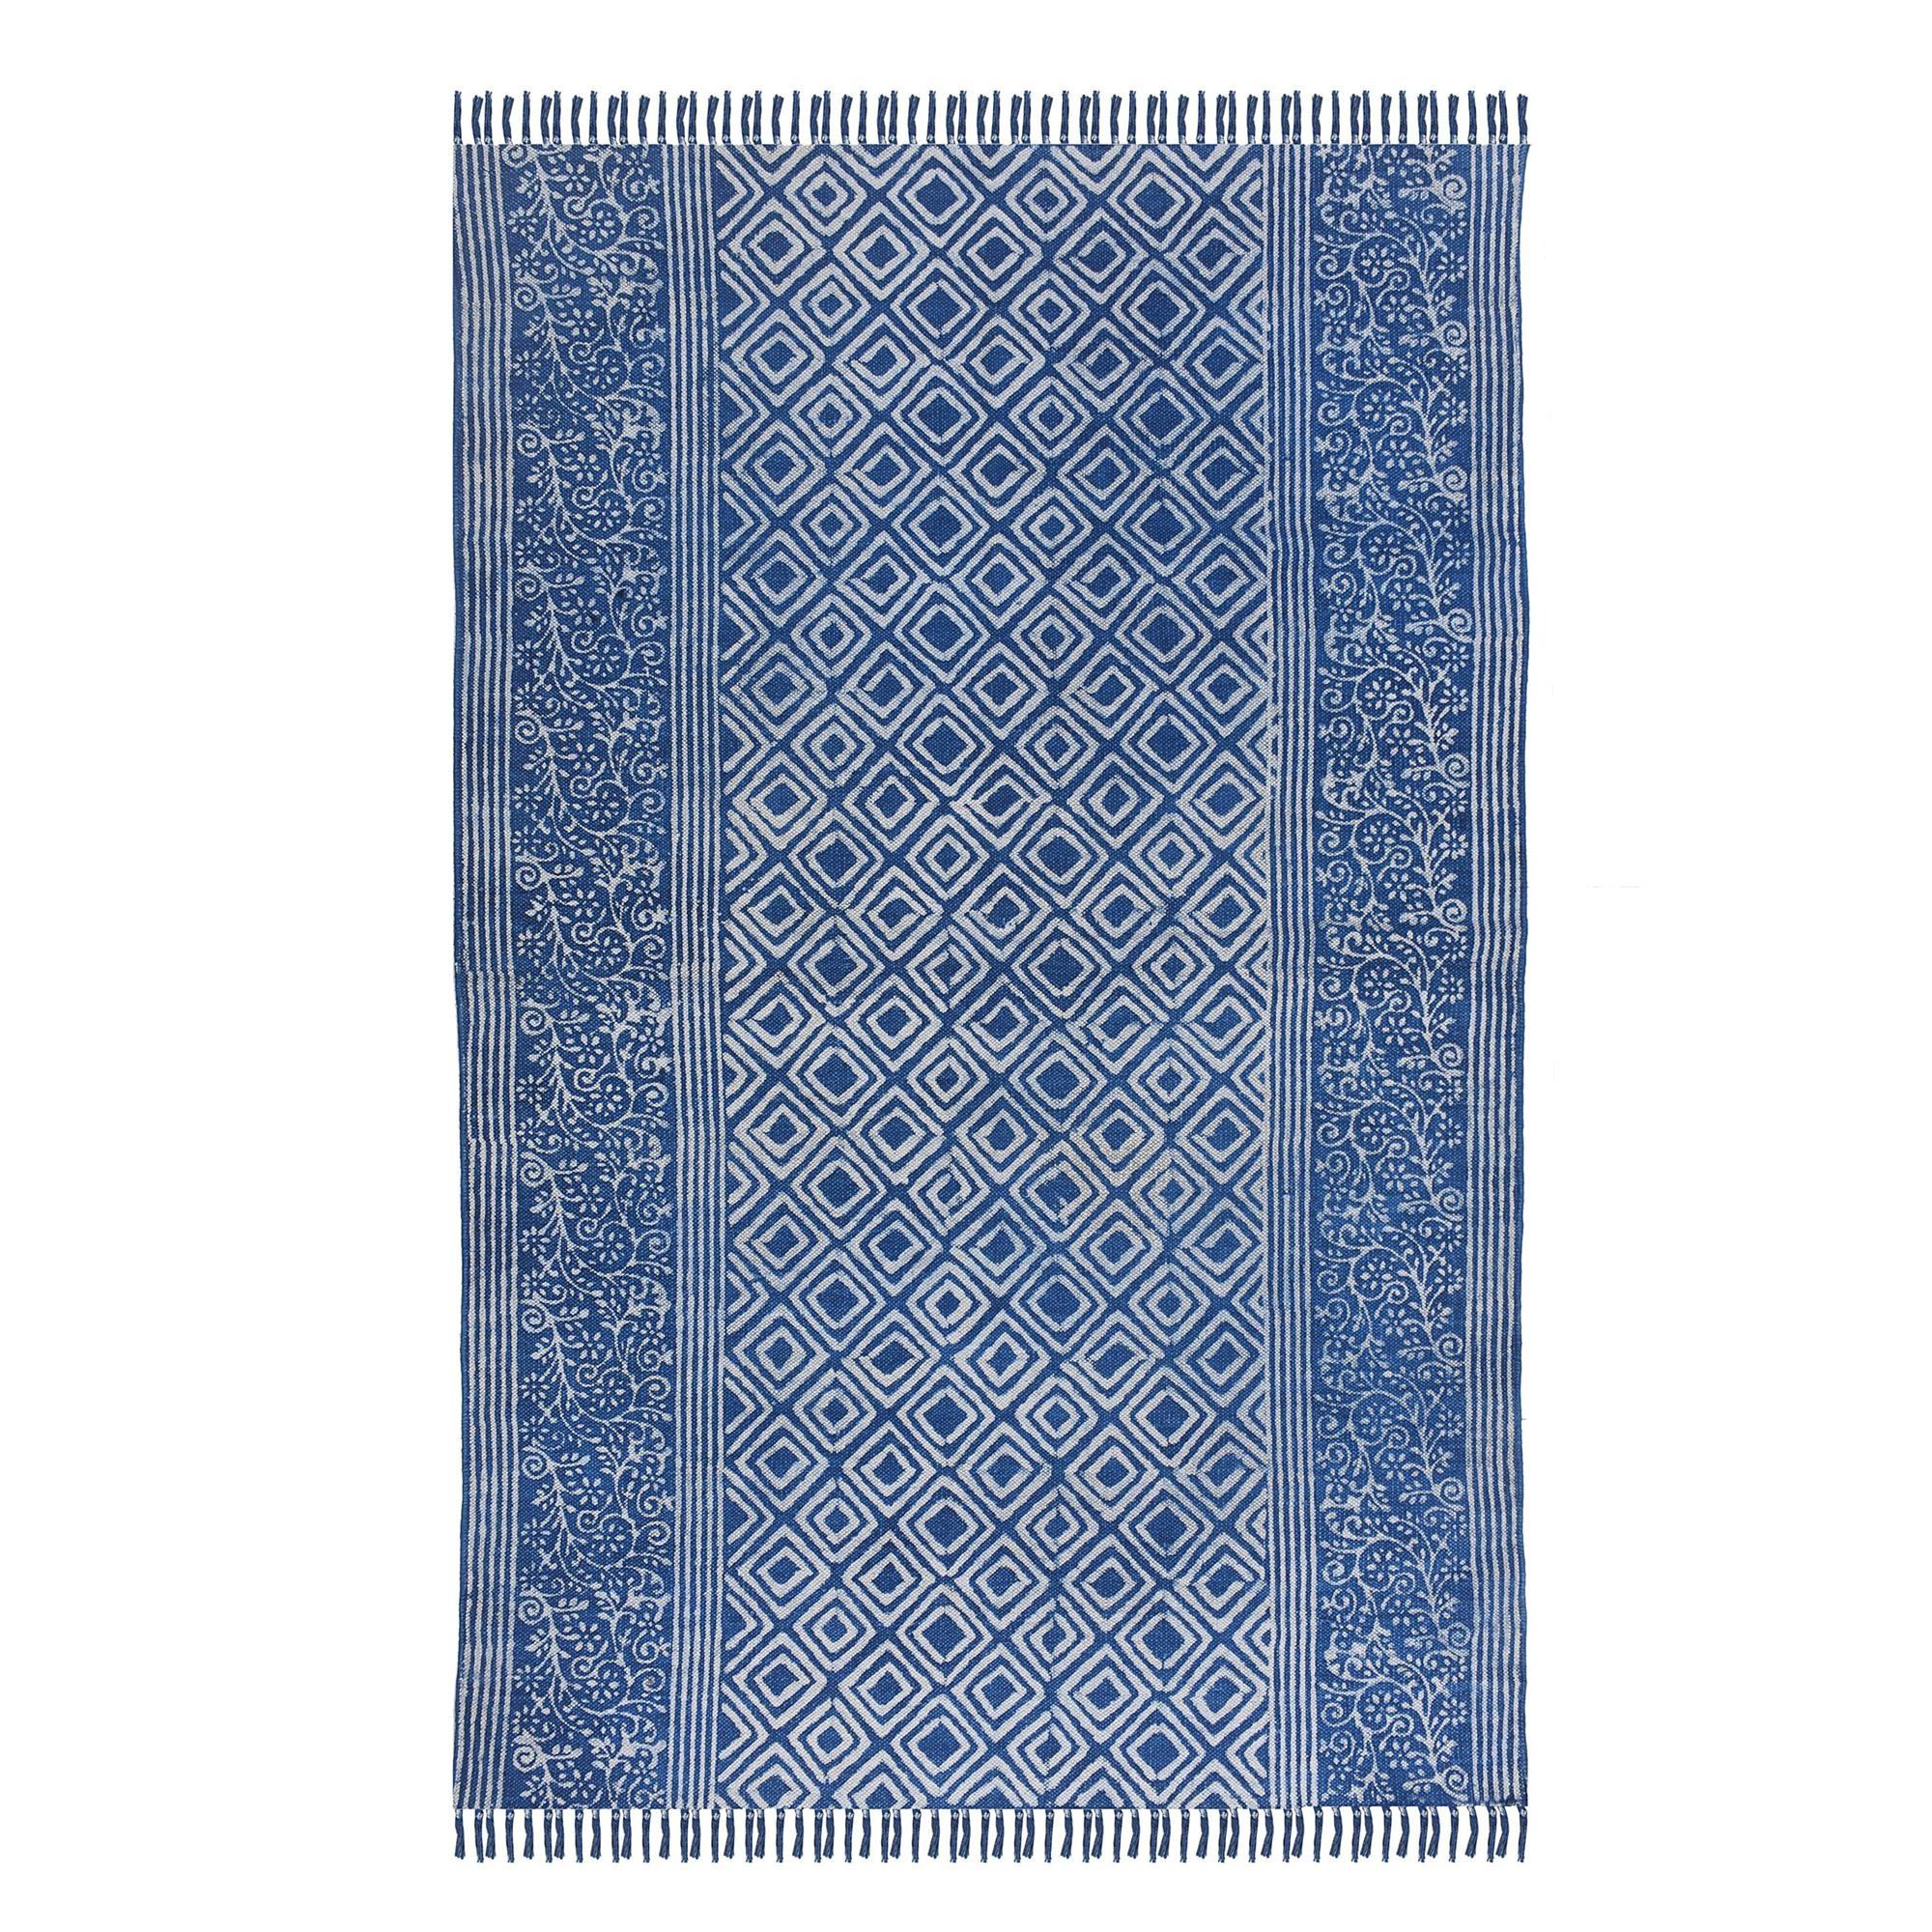 Hand Loom Woven Handmade Hand Block Printed Blue & White Indian Rugs Cotton Handicraft Carpet Rug